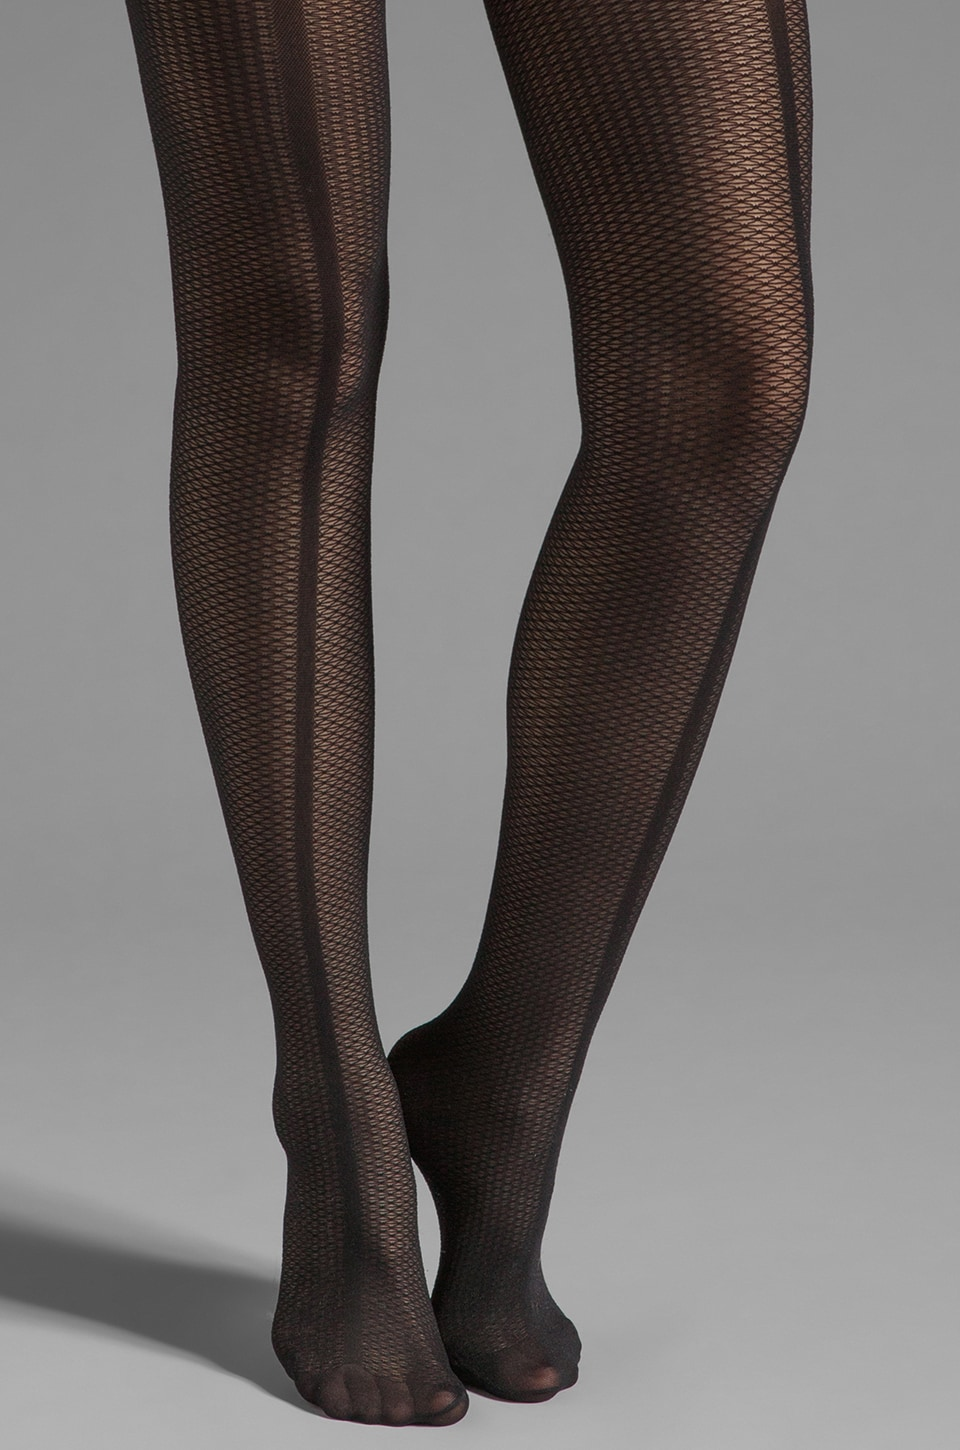 Pretty Polly Paneled Mesh Front Seam Tights in Black